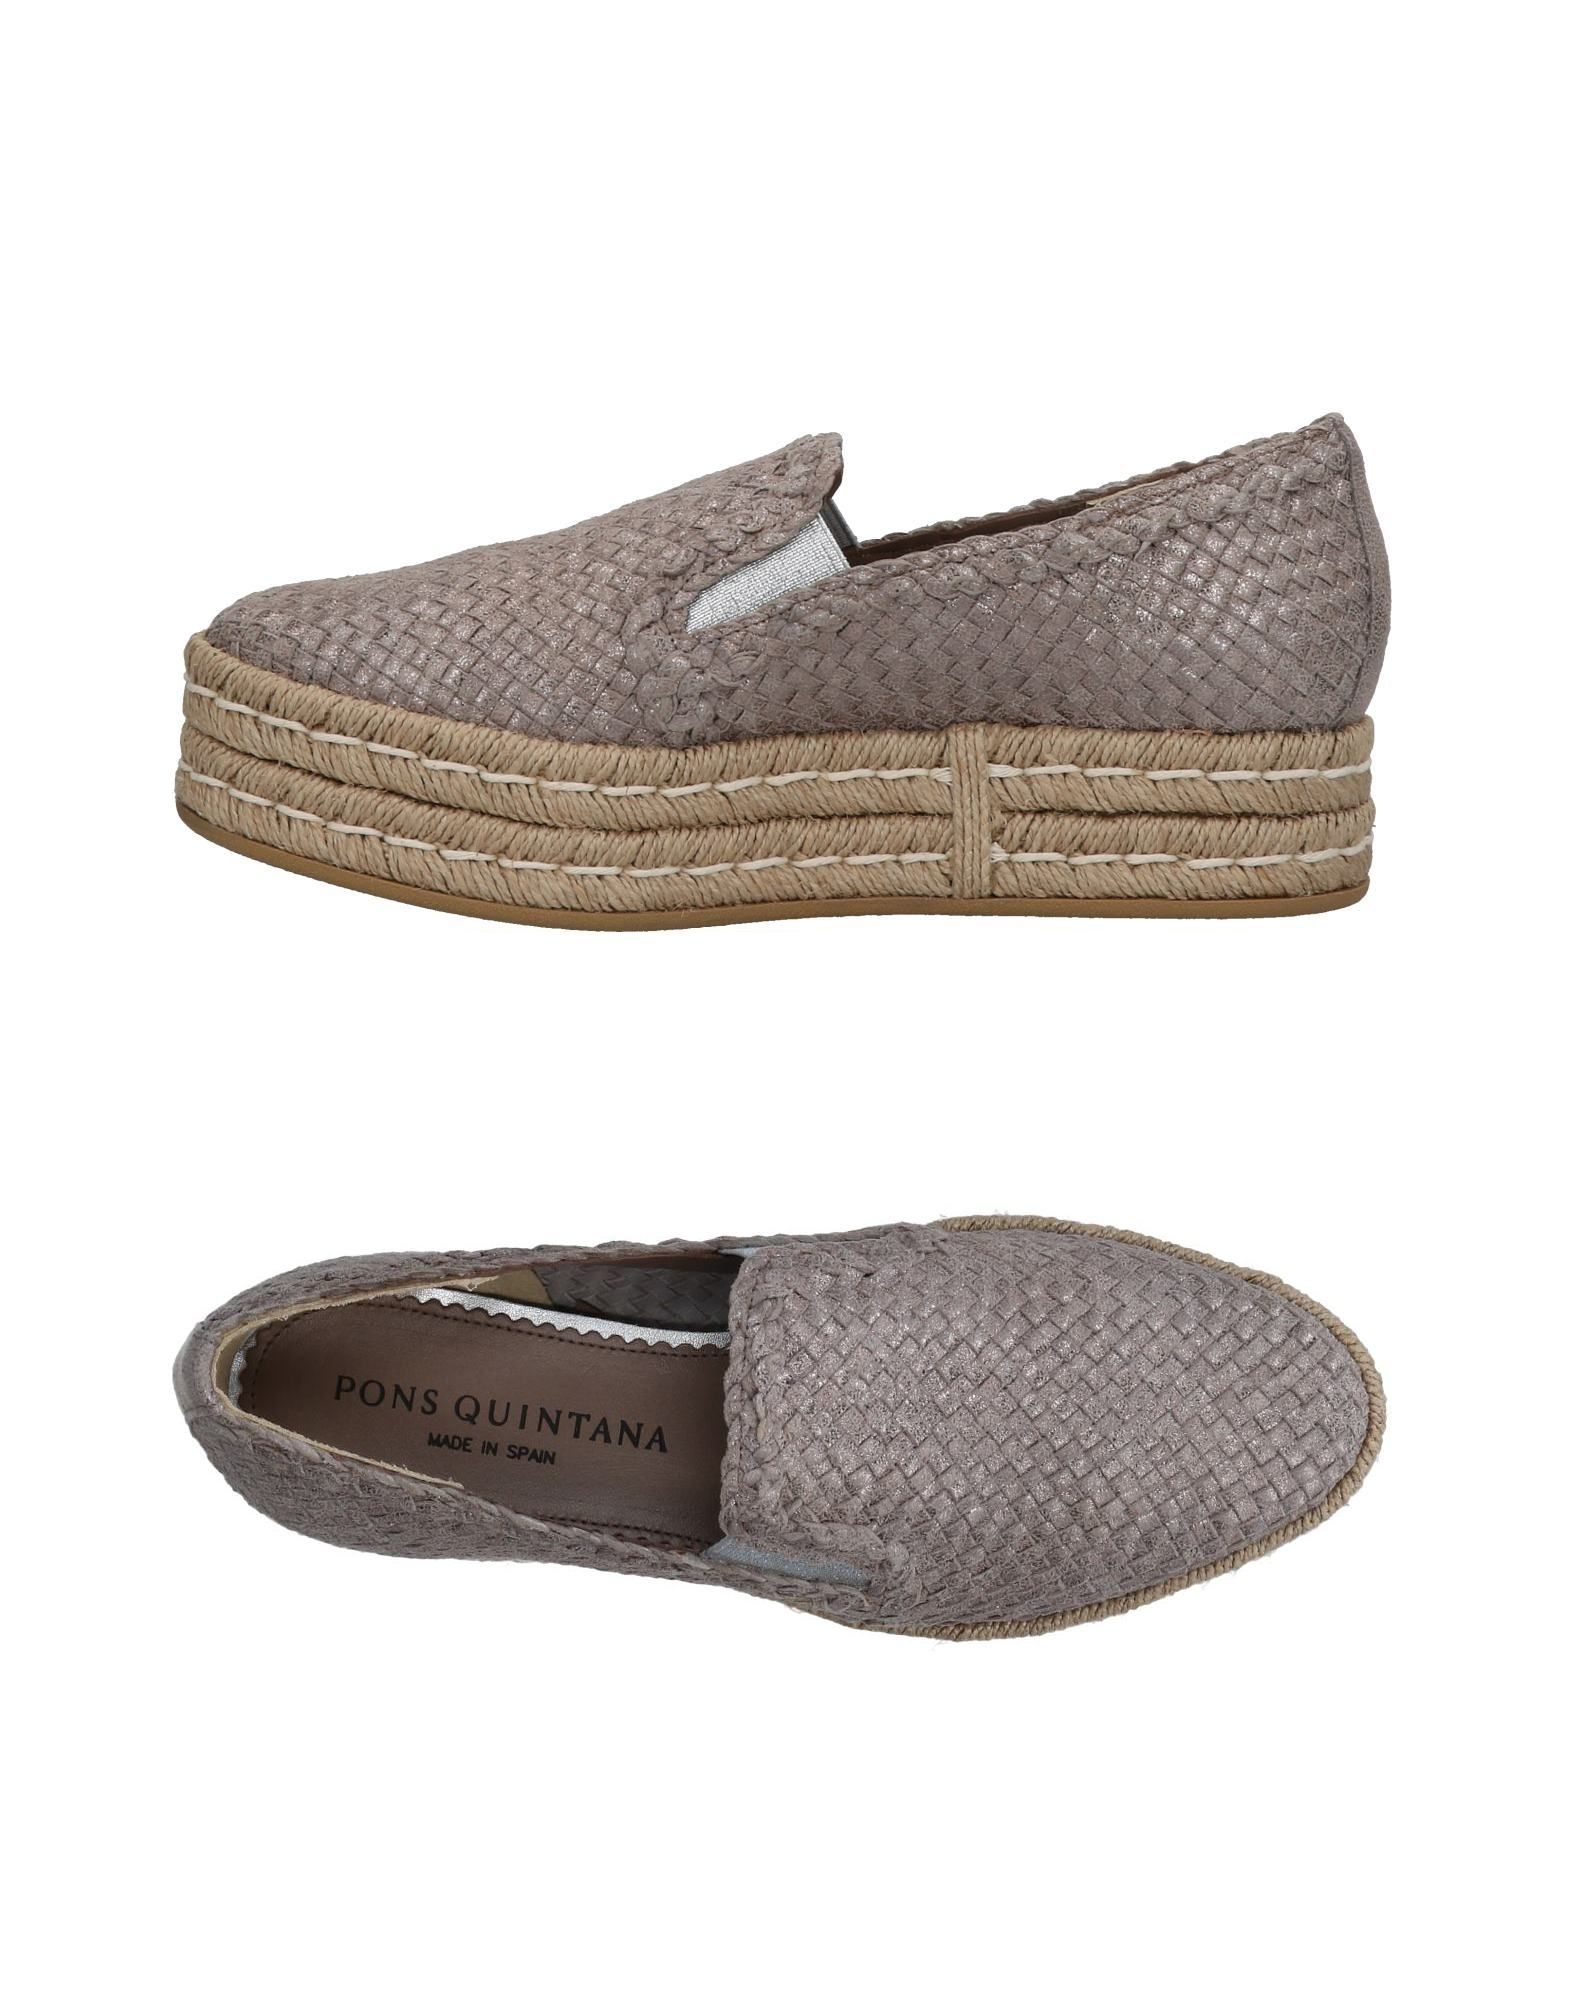 PONS QUINTANA Espadrilles discount in China recommend for sale cheap the cheapest best place for sale big sale for sale ff5Jt3v